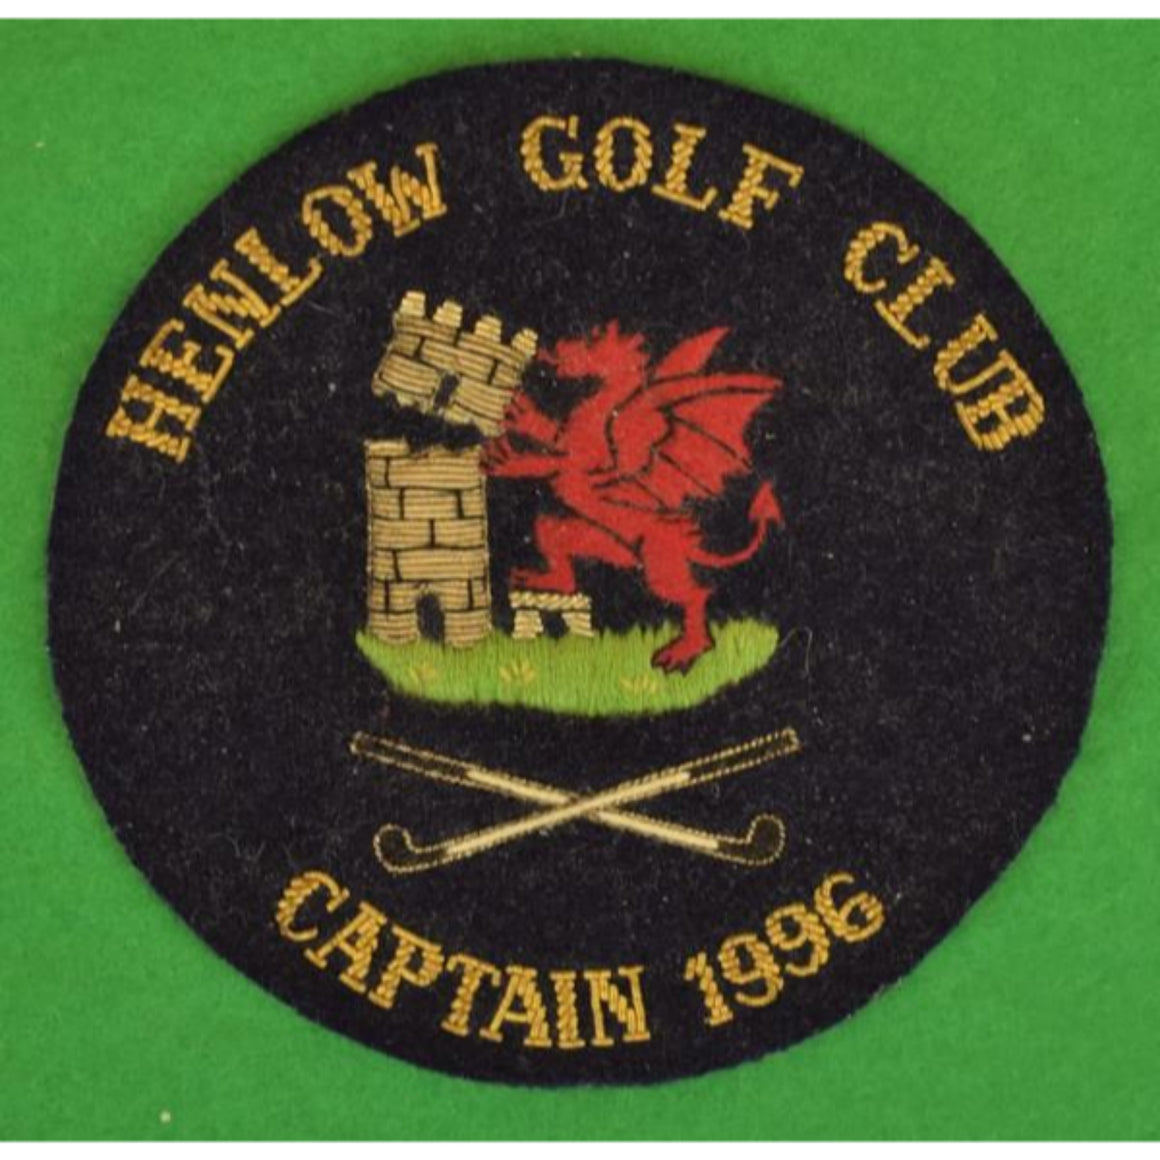 'Henlow (Eng) Golf Club Captain 1996 Blazer Crest'